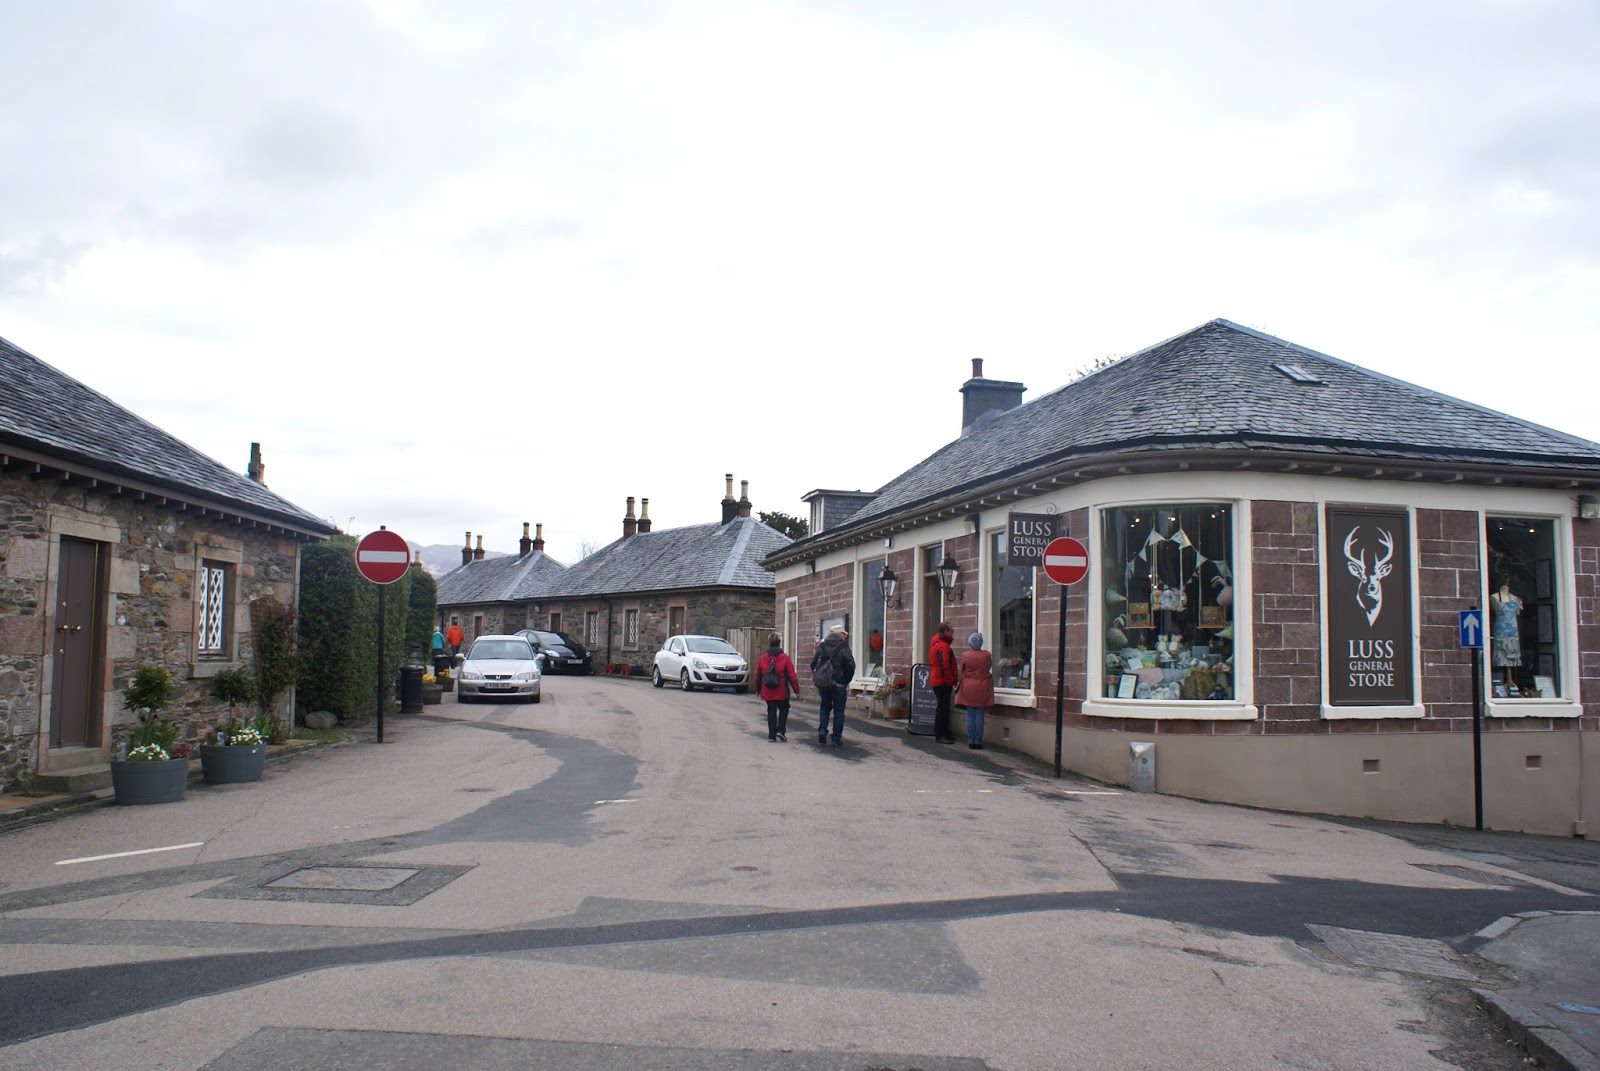 luss general store loch lomond scotland uk